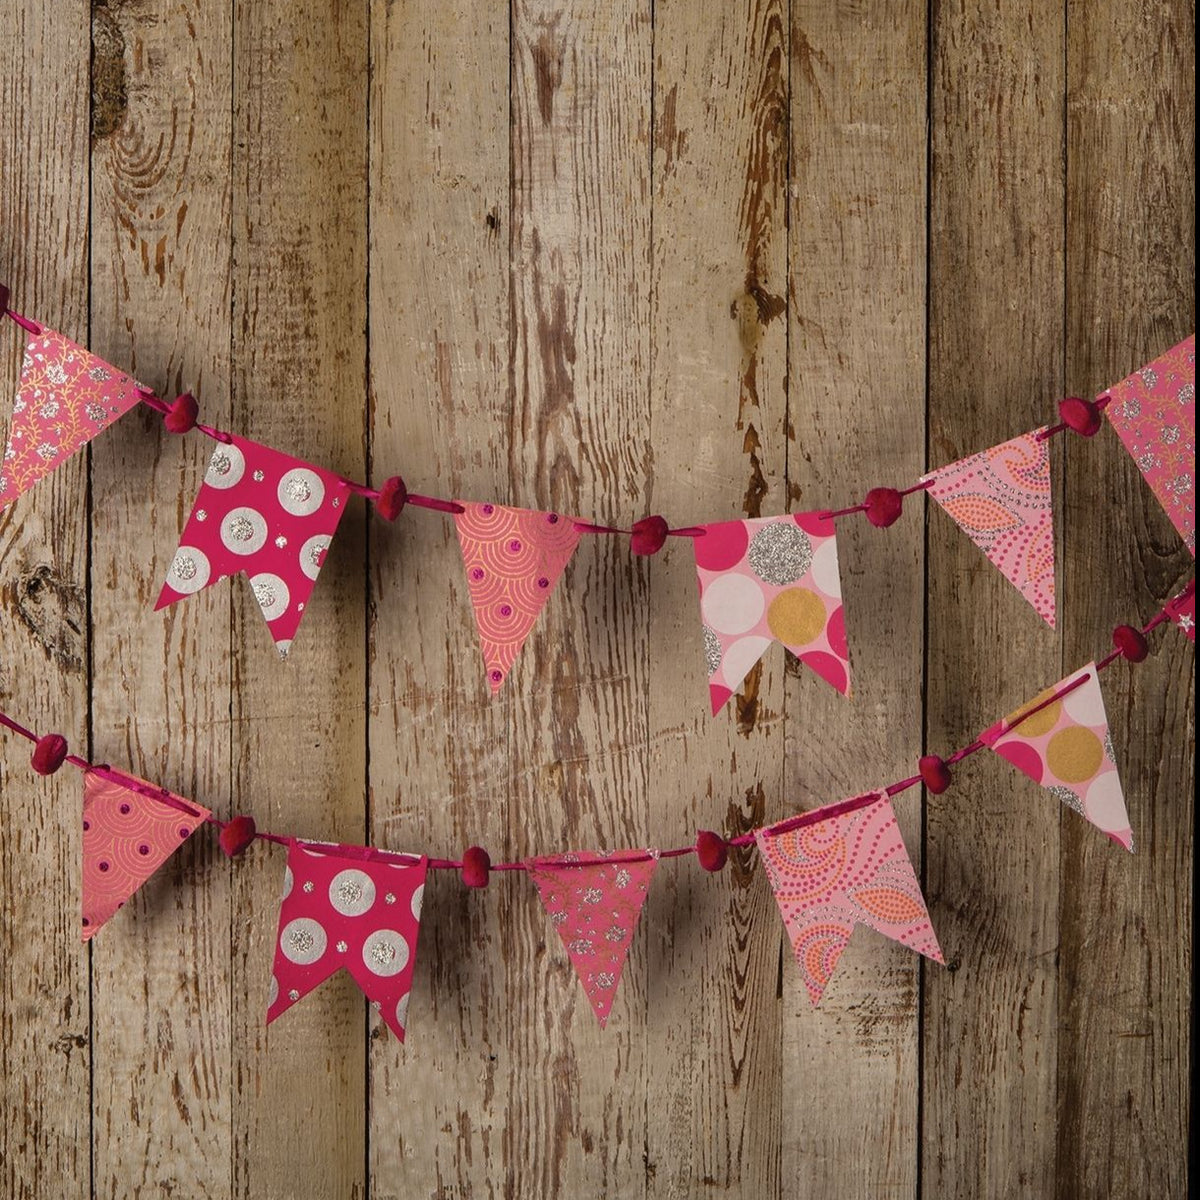 Pink Paper Small Pennant and Flag Banner (9.5 Feet Long) - PaperLanternStore.com - Paper Lanterns, Decor, Party Lights & More